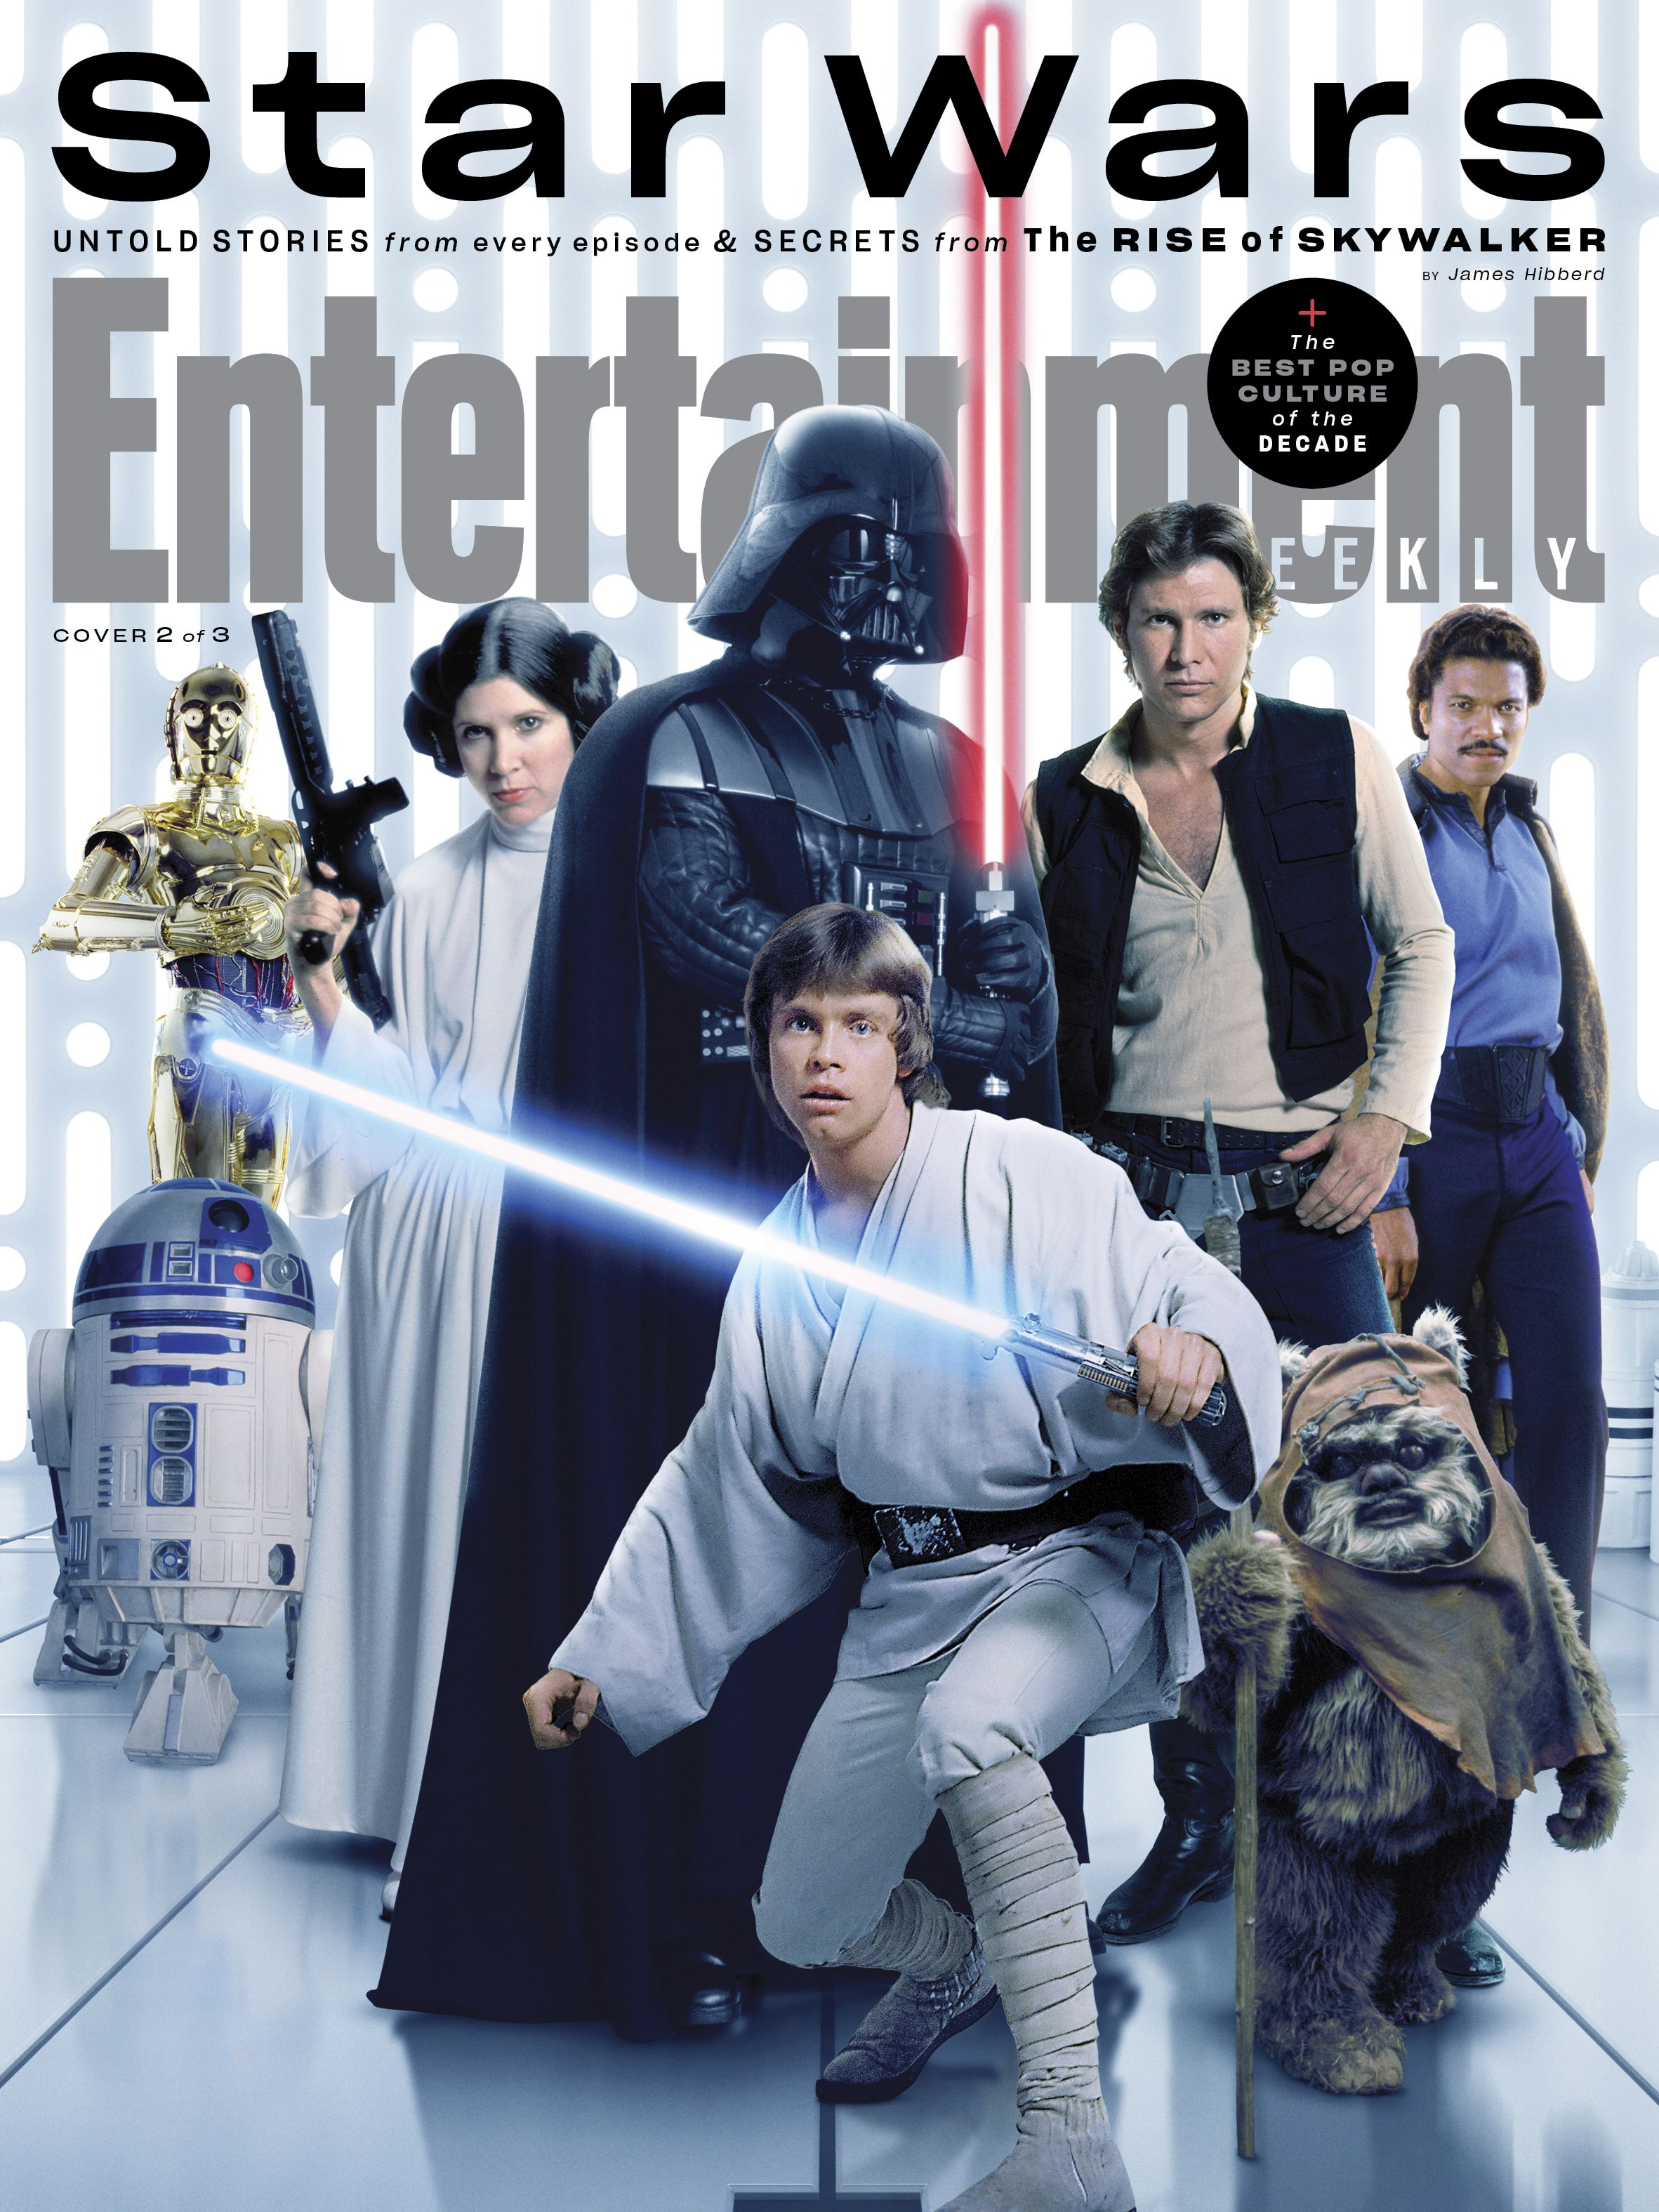 Inside Star Wars The Rise Of Skywalker The Stakes Are All Or Nothing With This Film Star Wars Cast Star Wars Books Star Wars Trilogy